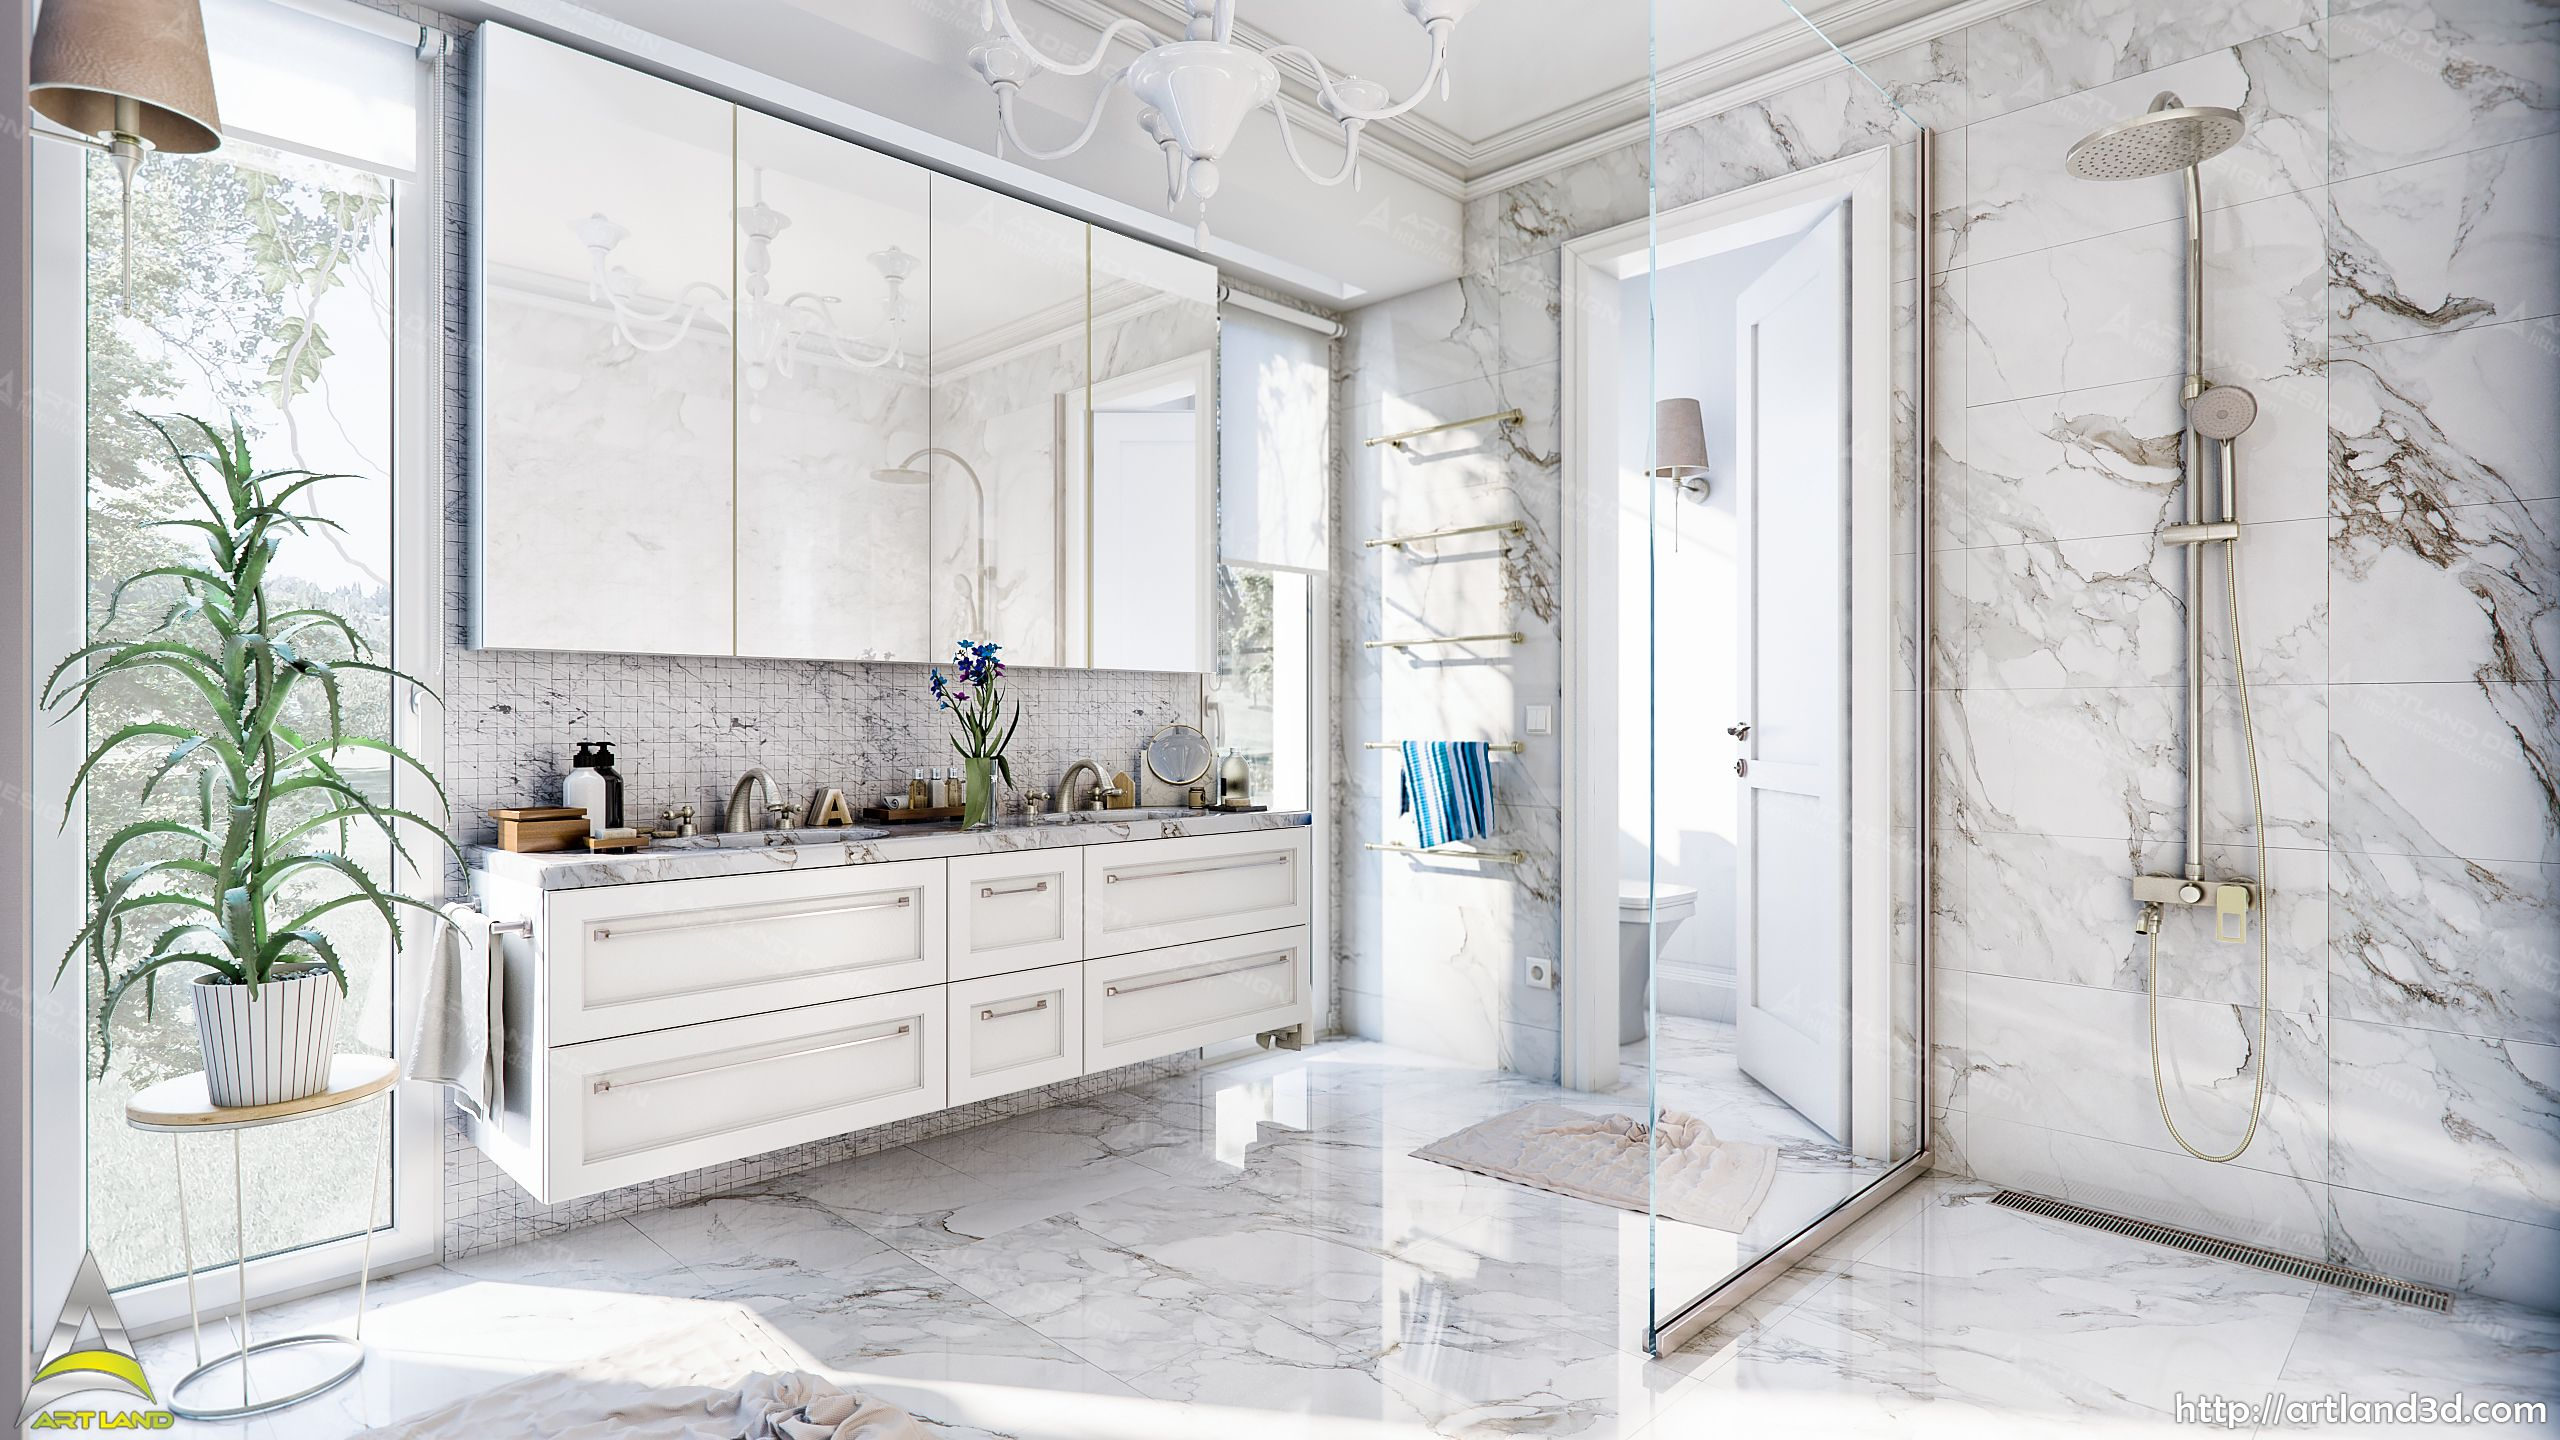 Ensuite bathroom 3D Visualization, Marble tiles, Modern Design | 3D ...